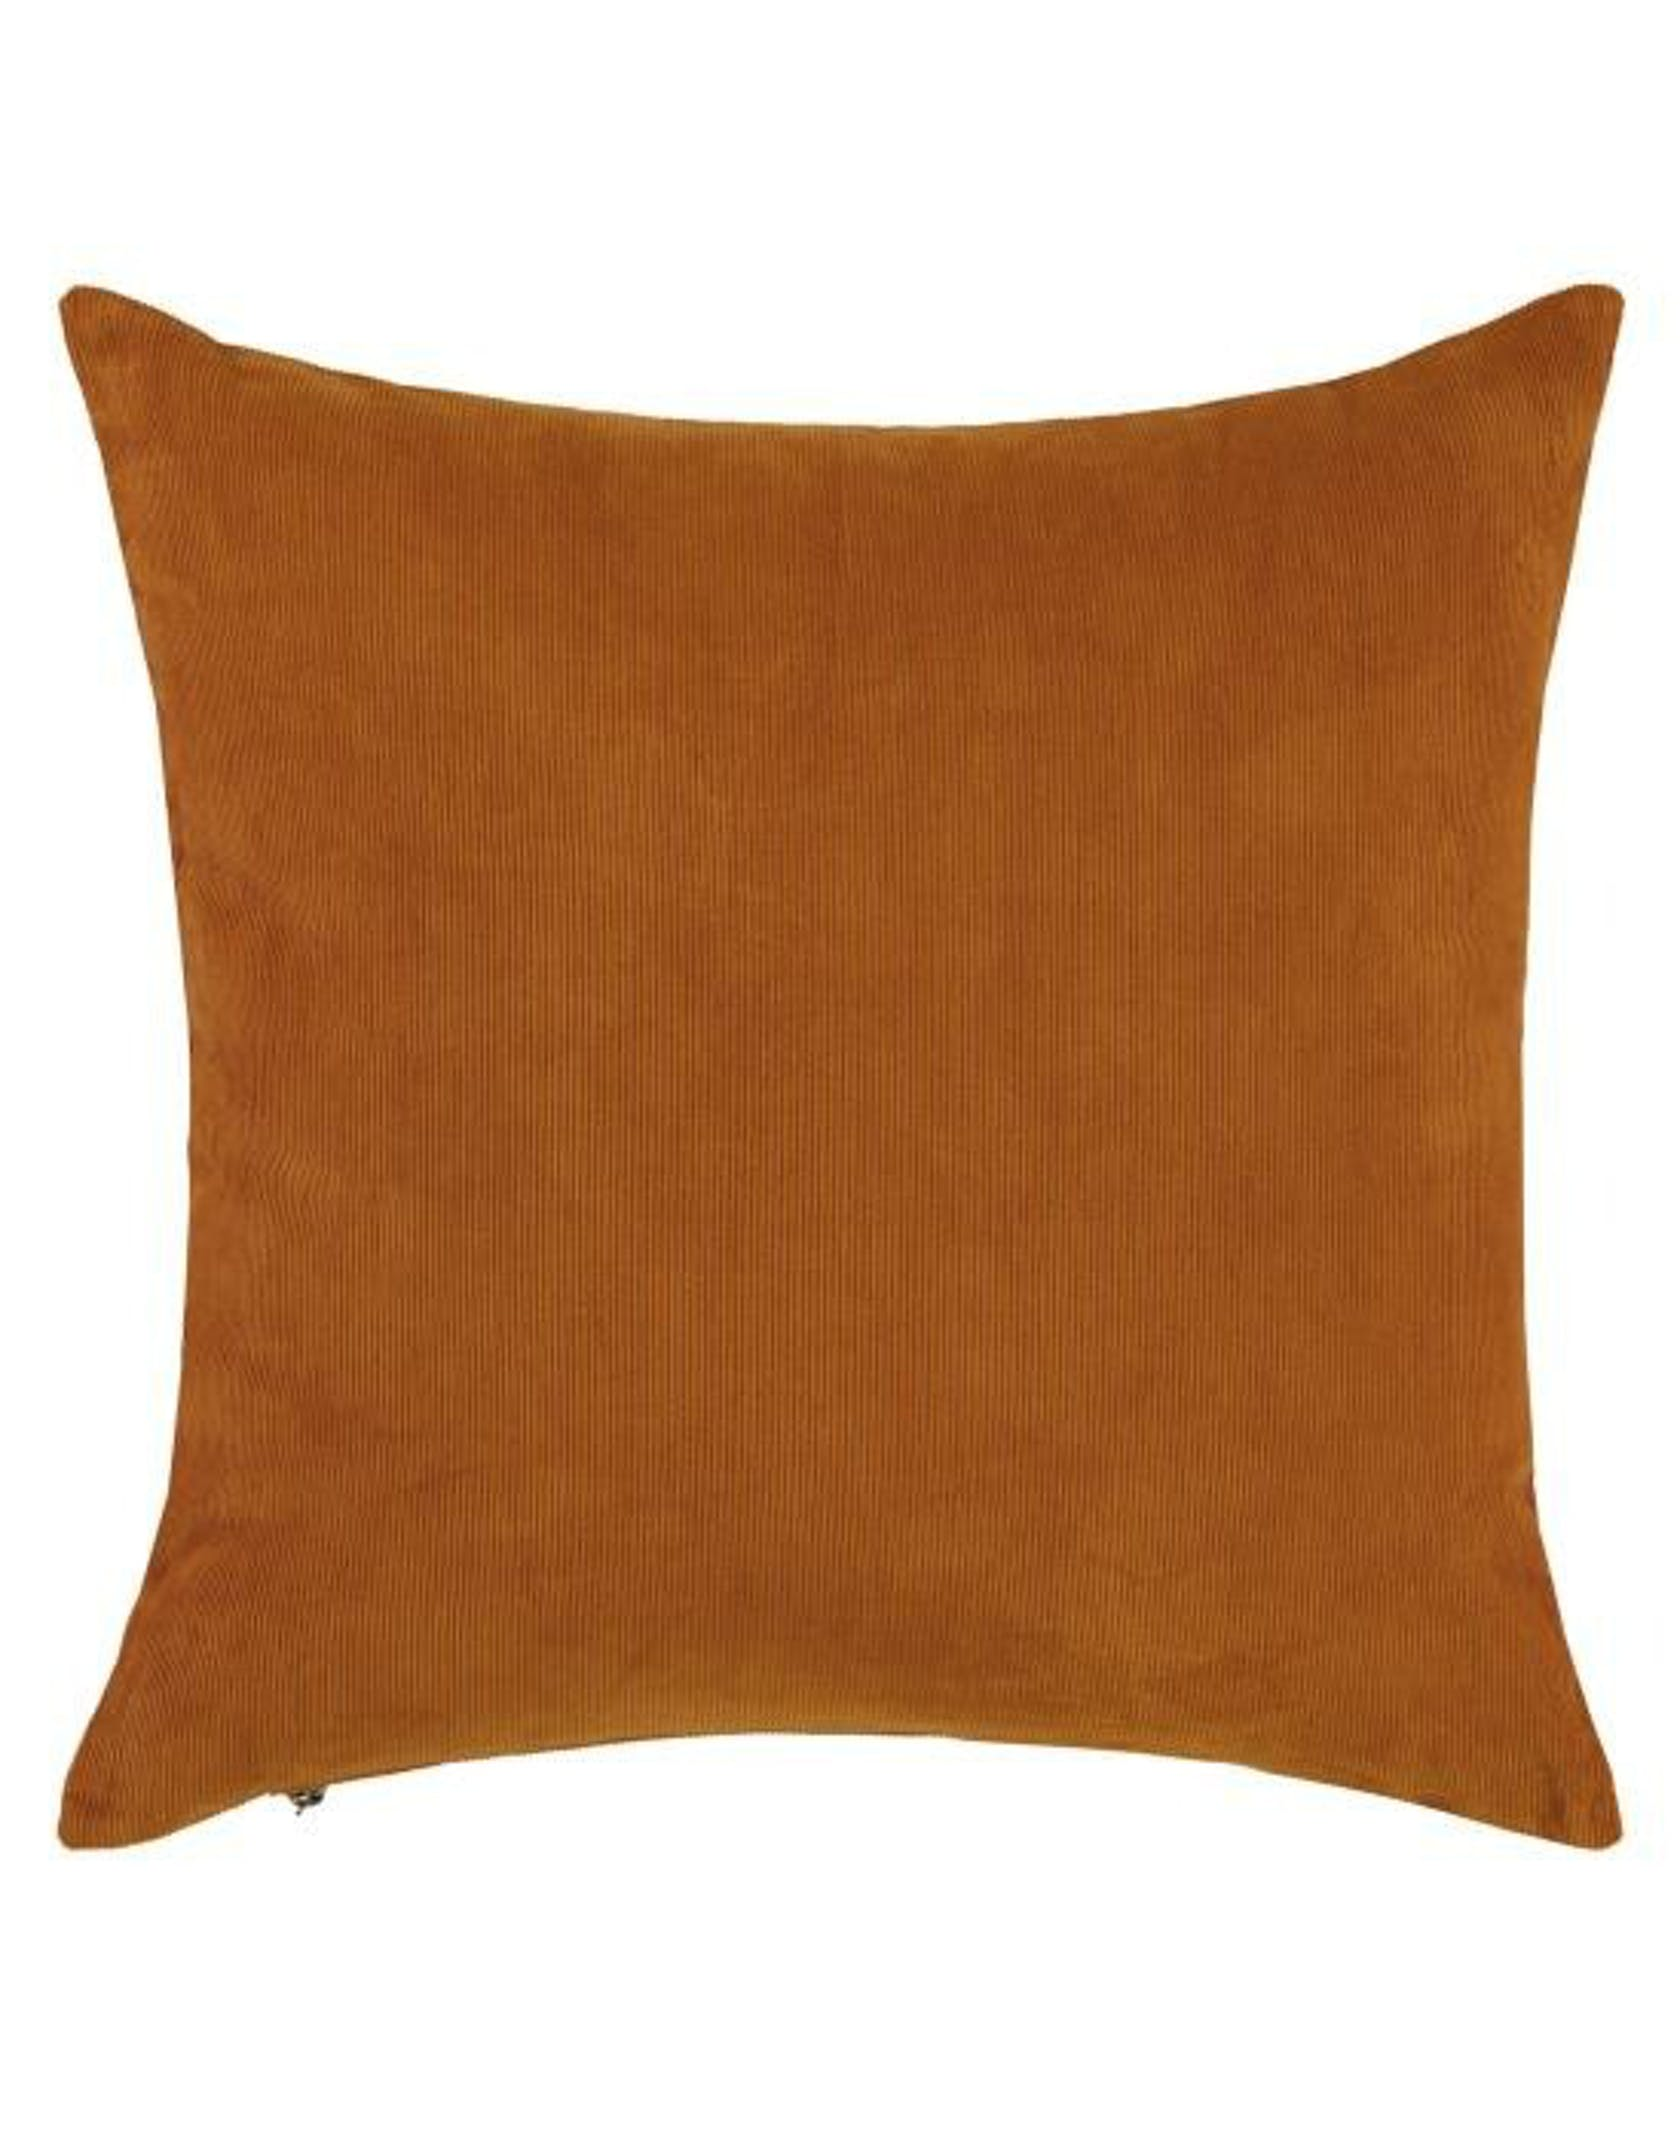 ESSENZA Riv Leather Brown Cushion square 45 x 45